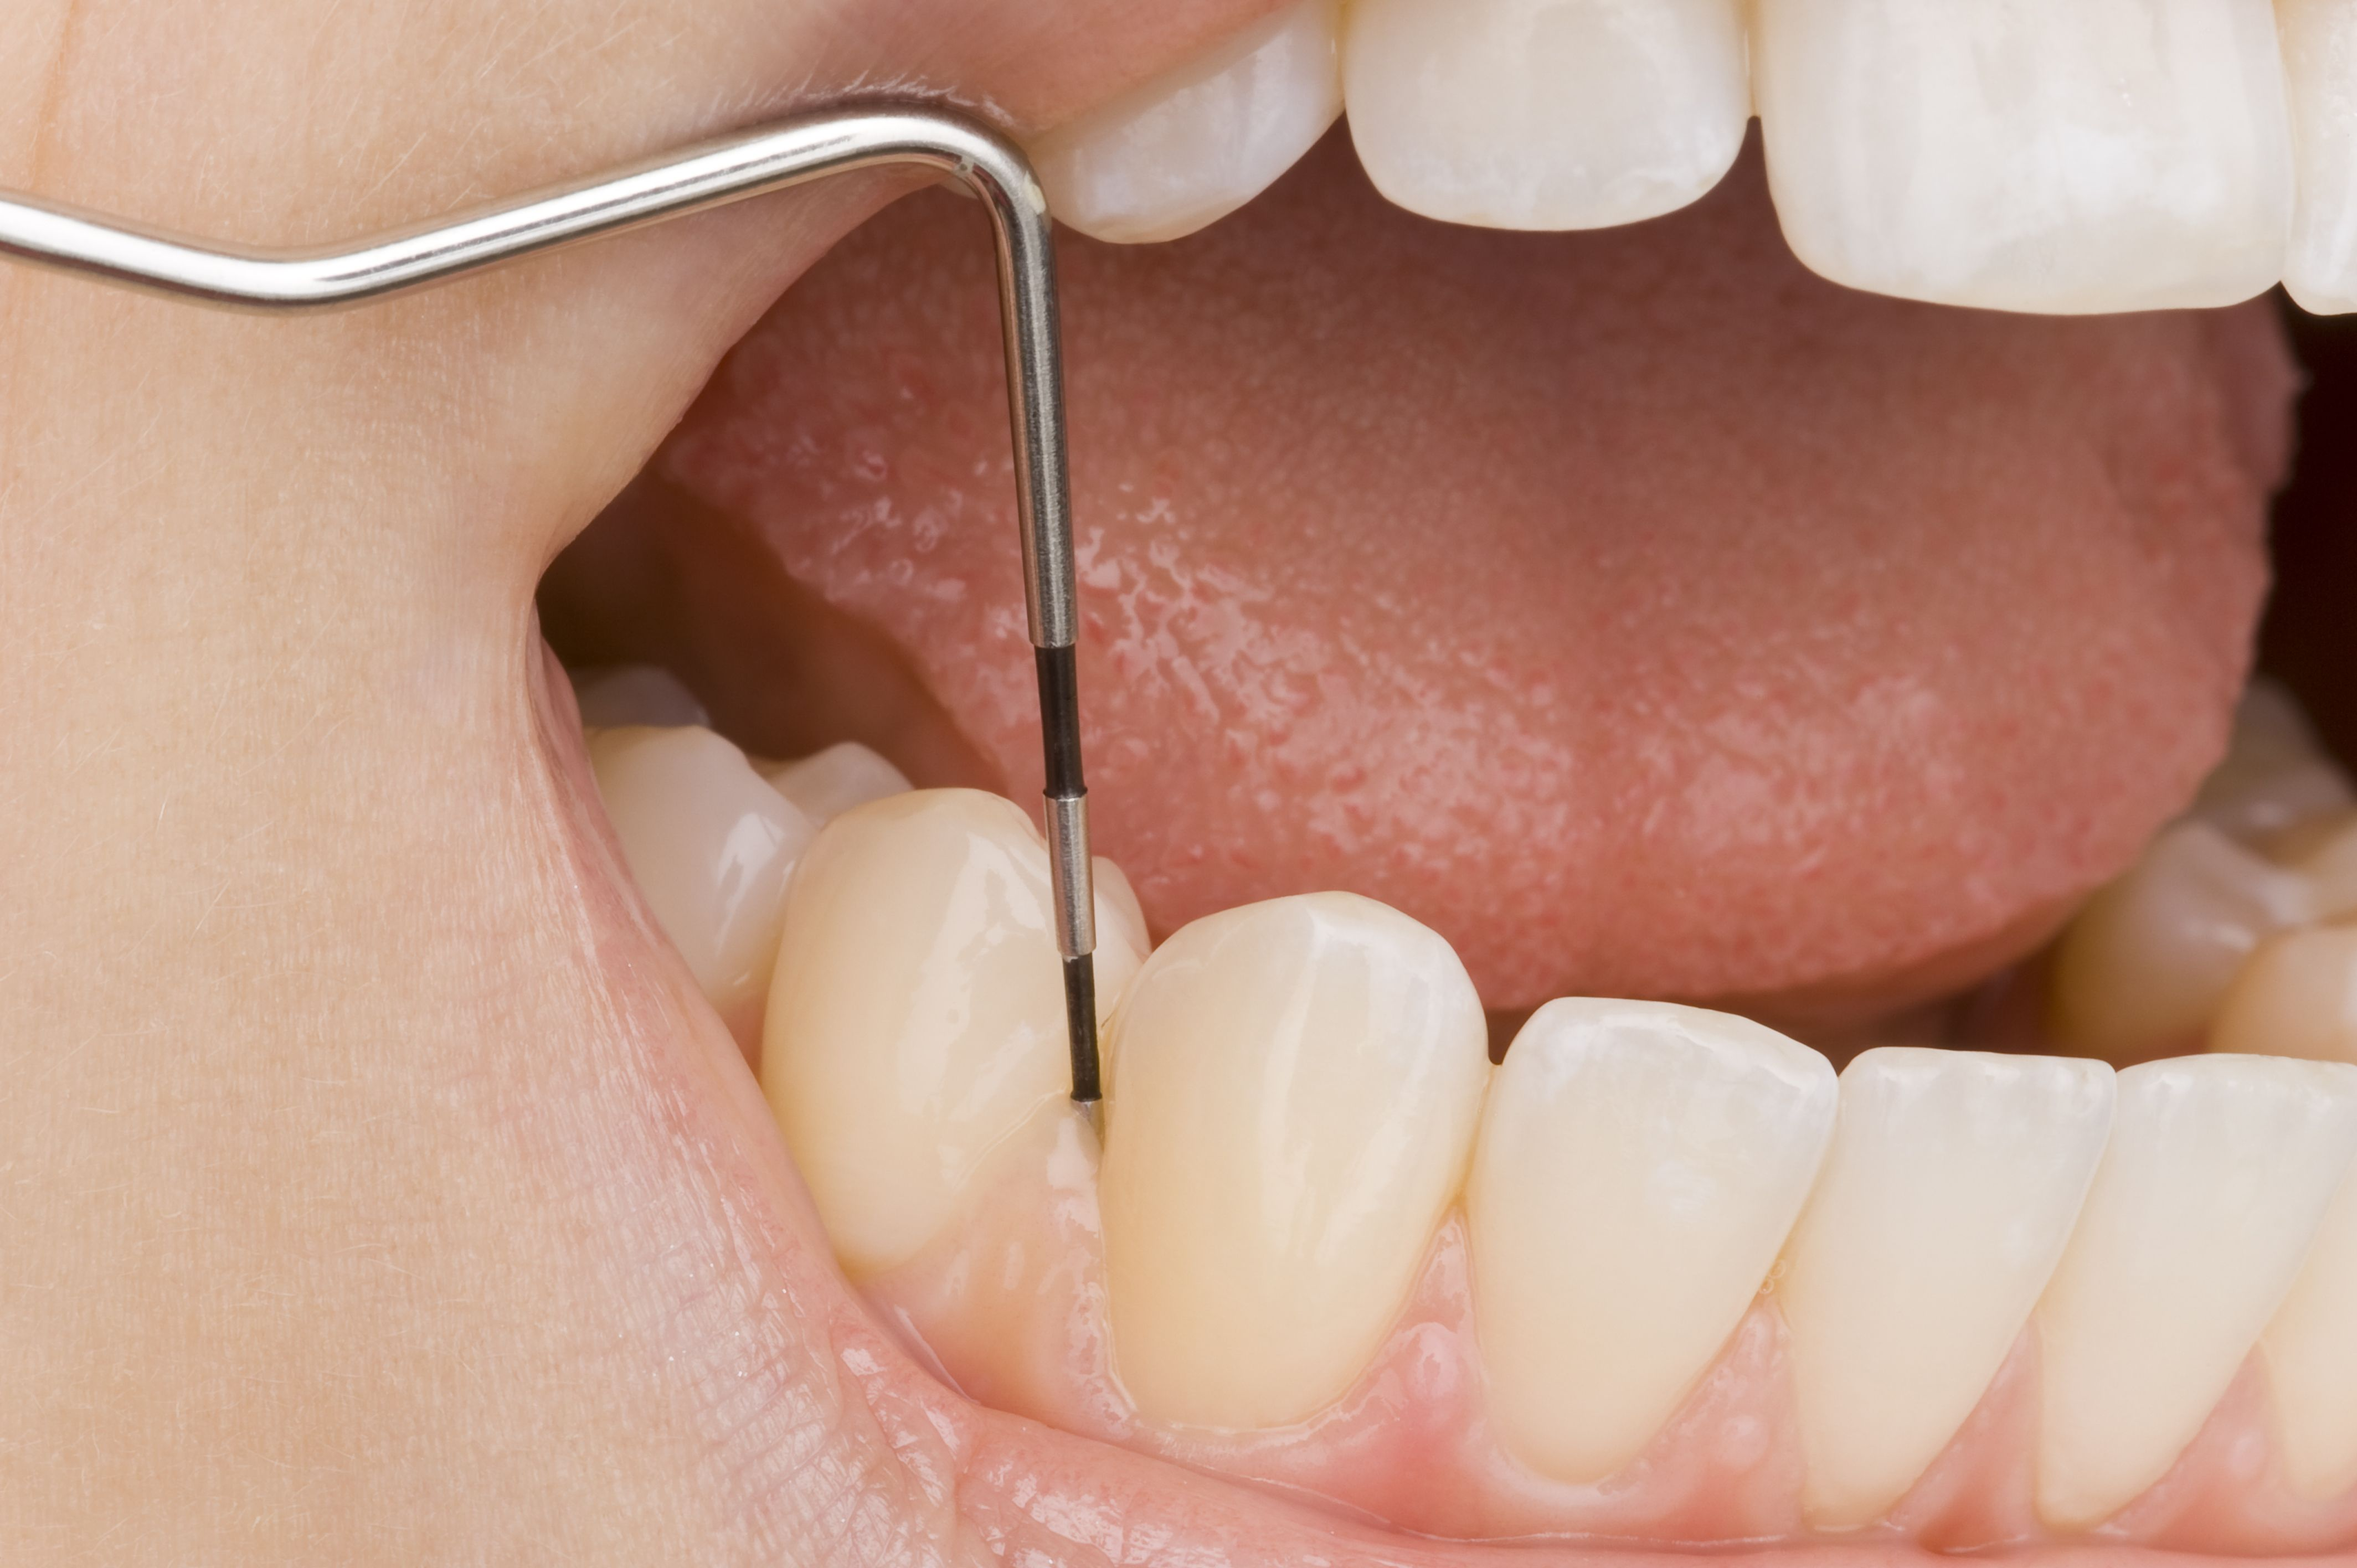 A person opening their mouth with a dental instrument touching a tooth